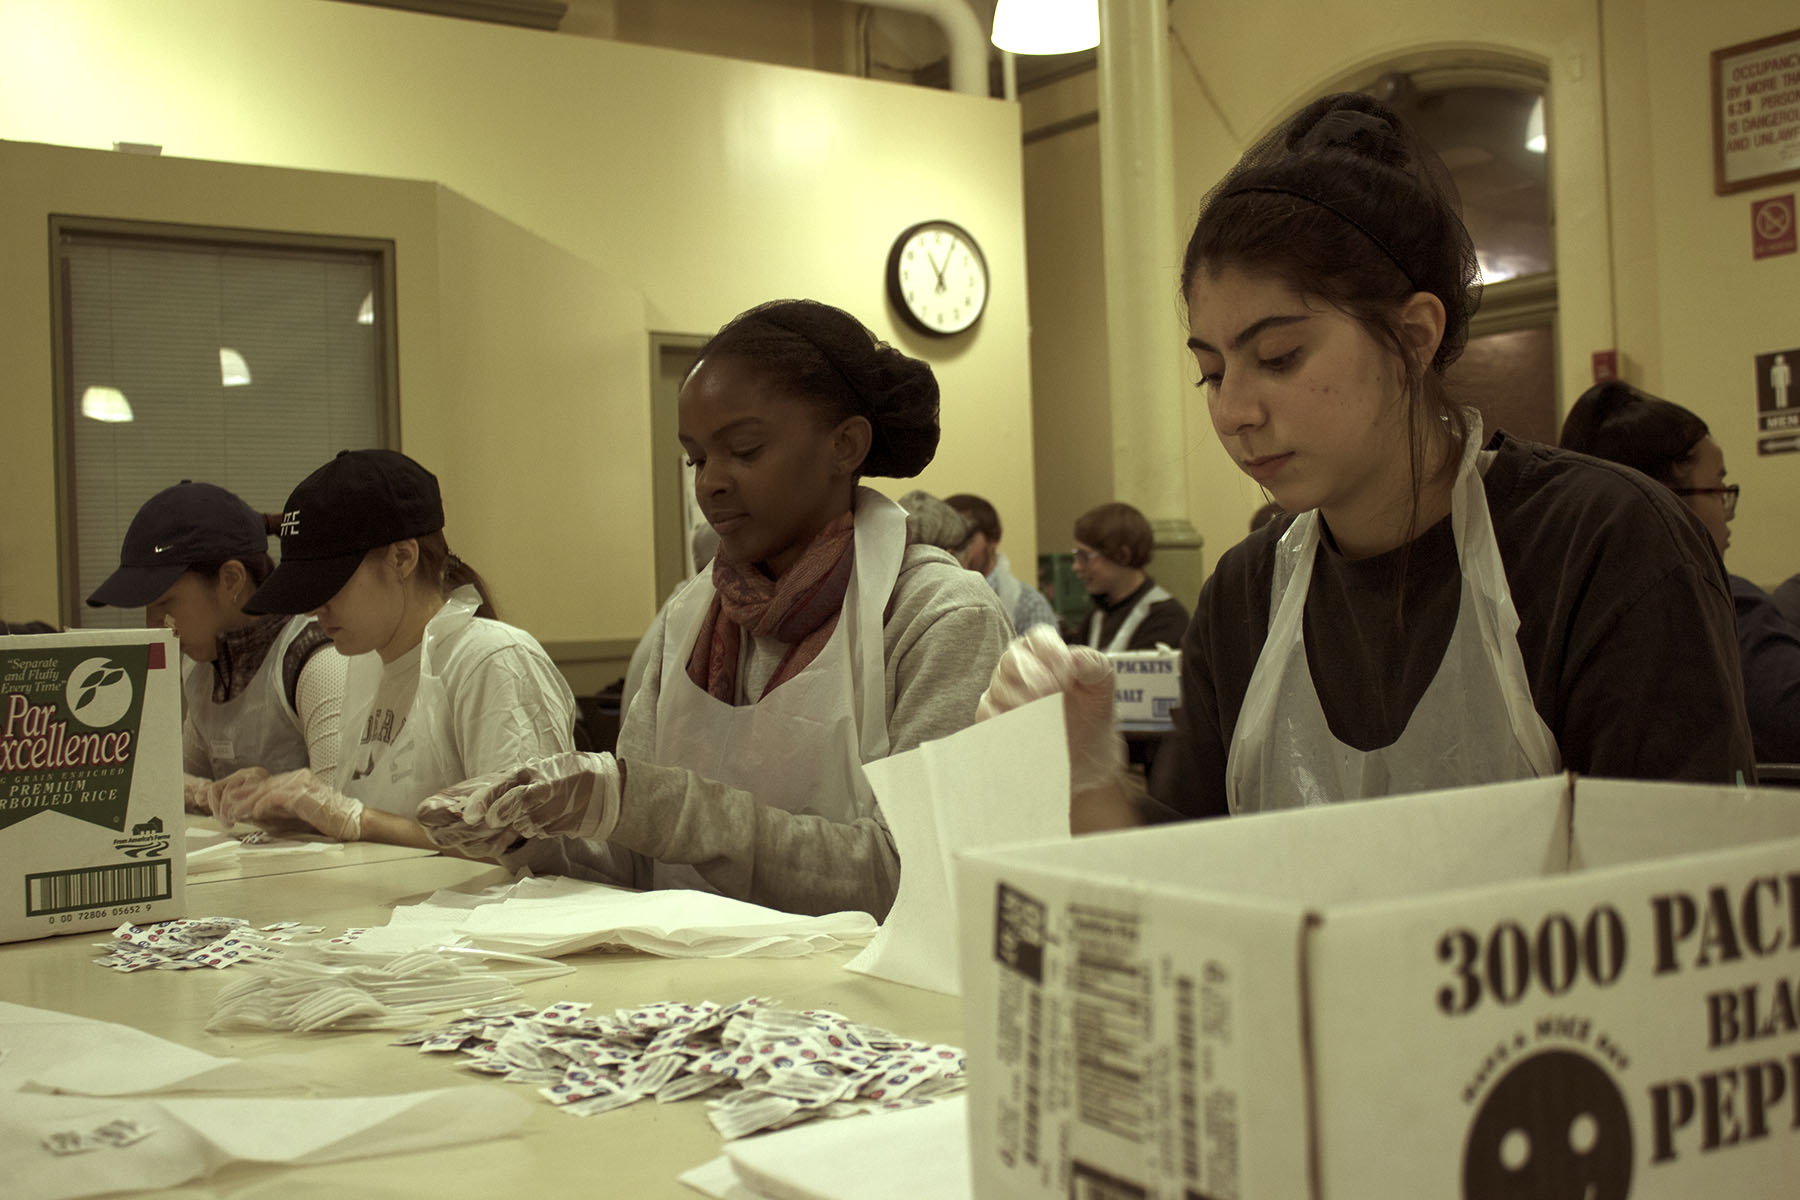 Students from FIT roll silverware into napkins, partly fulfilling a school community service requirement.  Eagle  photos by Victoria Merlino.